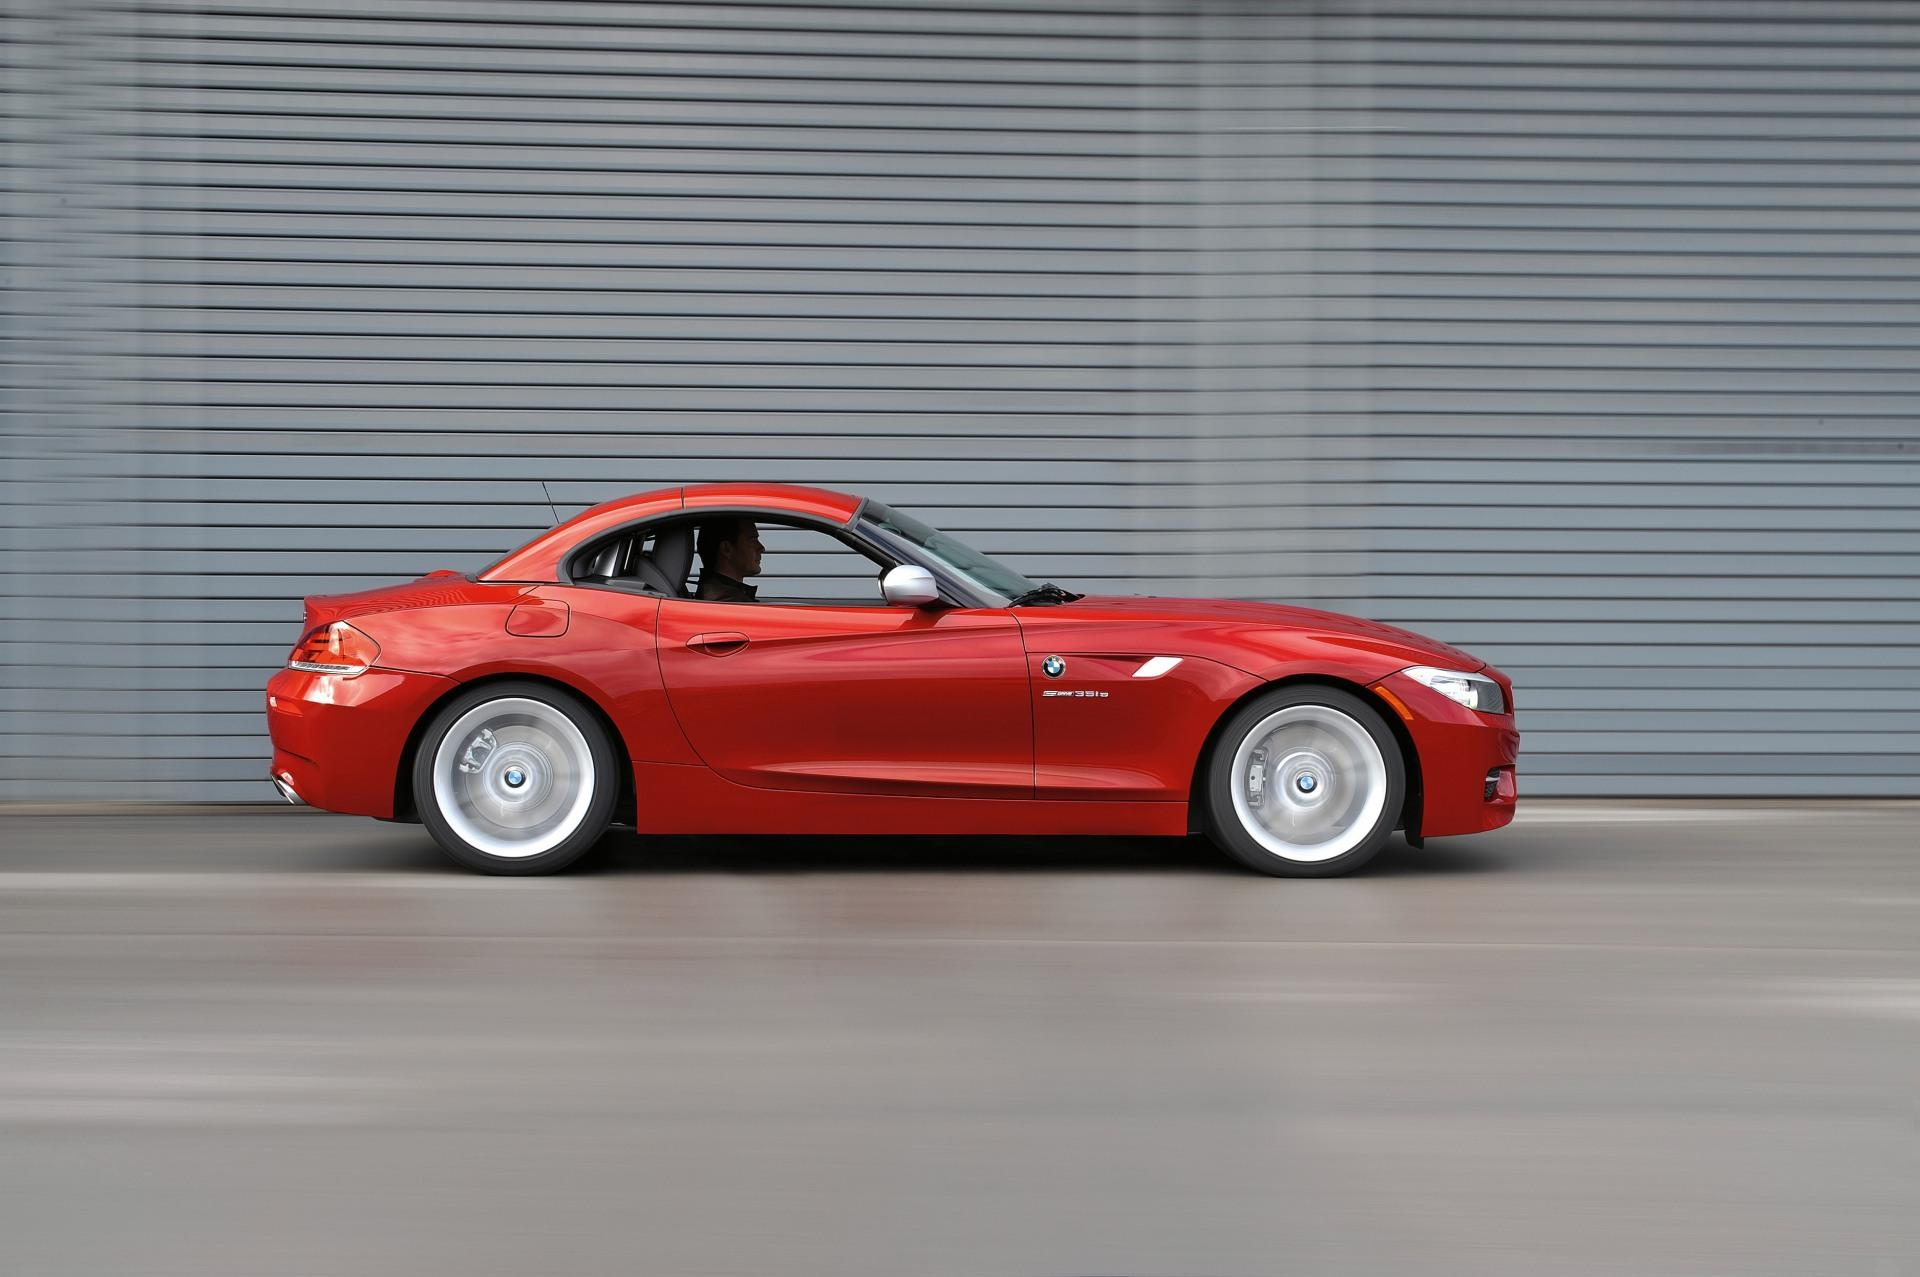 2010 Bmw E89 Z4 Sdrive35is Conceptcarz Com